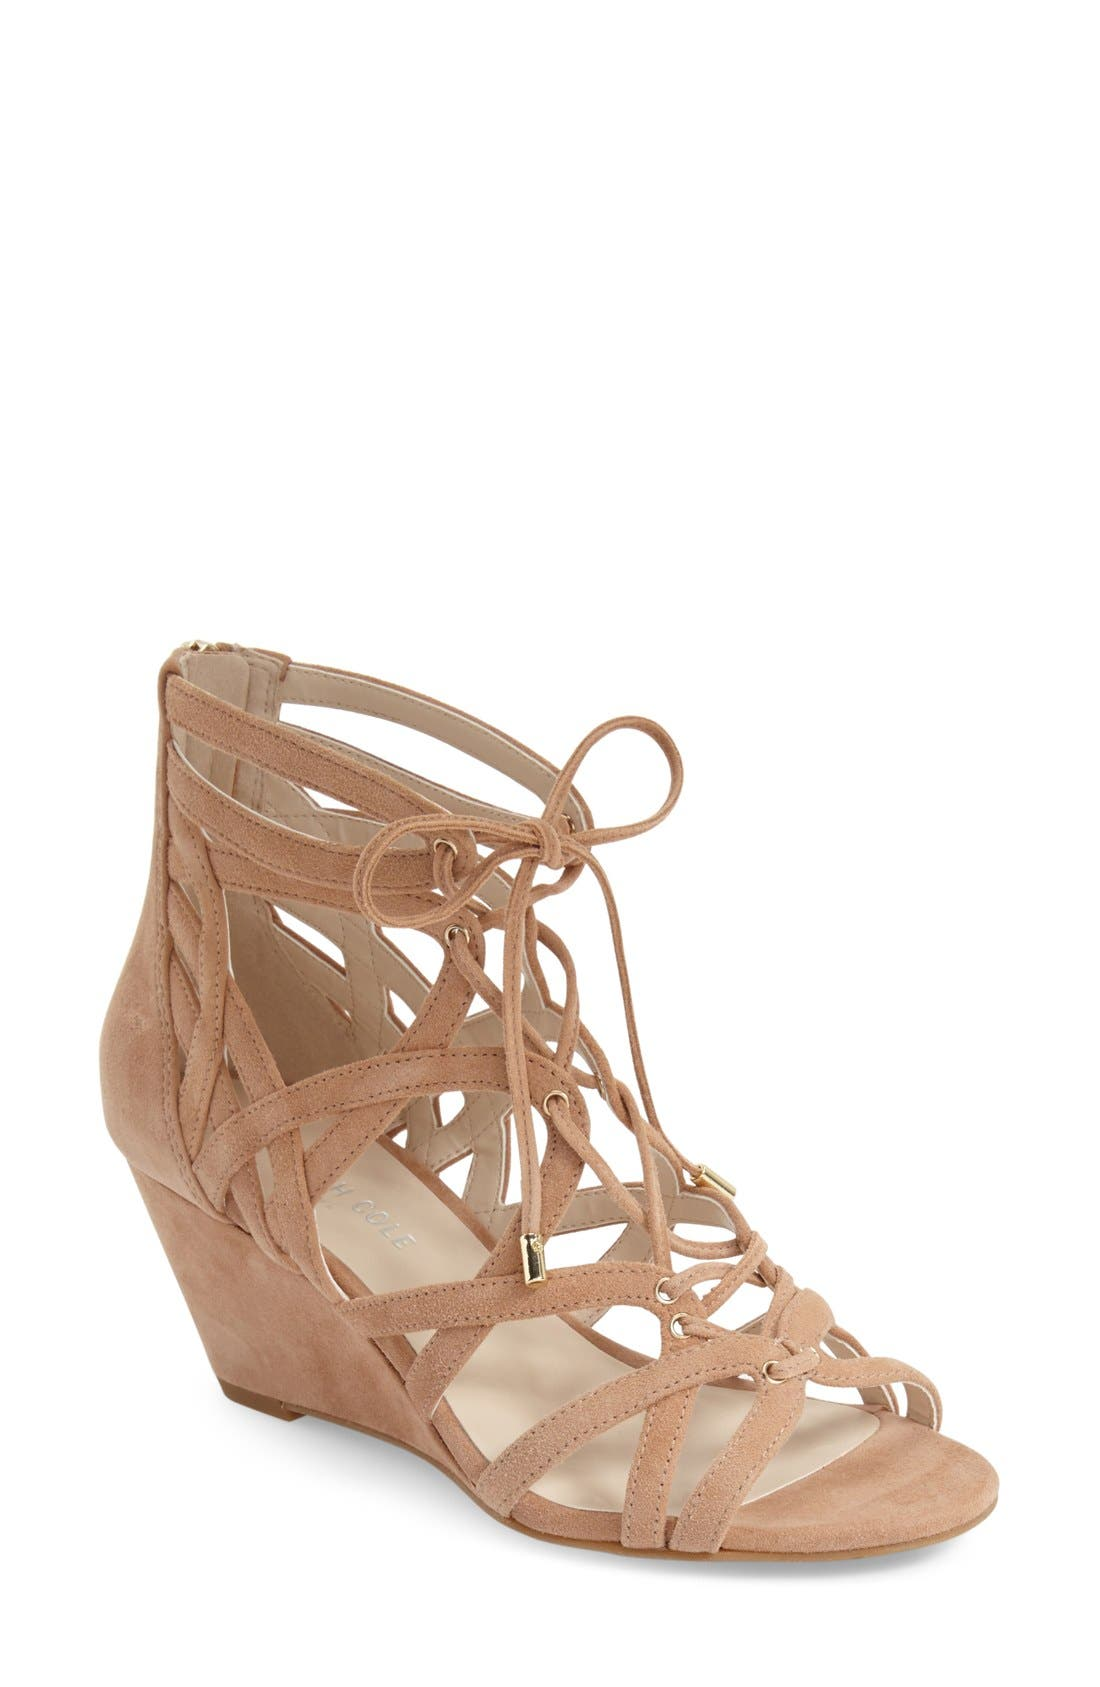 'Dylan' Wedge Sandal,                             Main thumbnail 1, color,                             Buff Suede